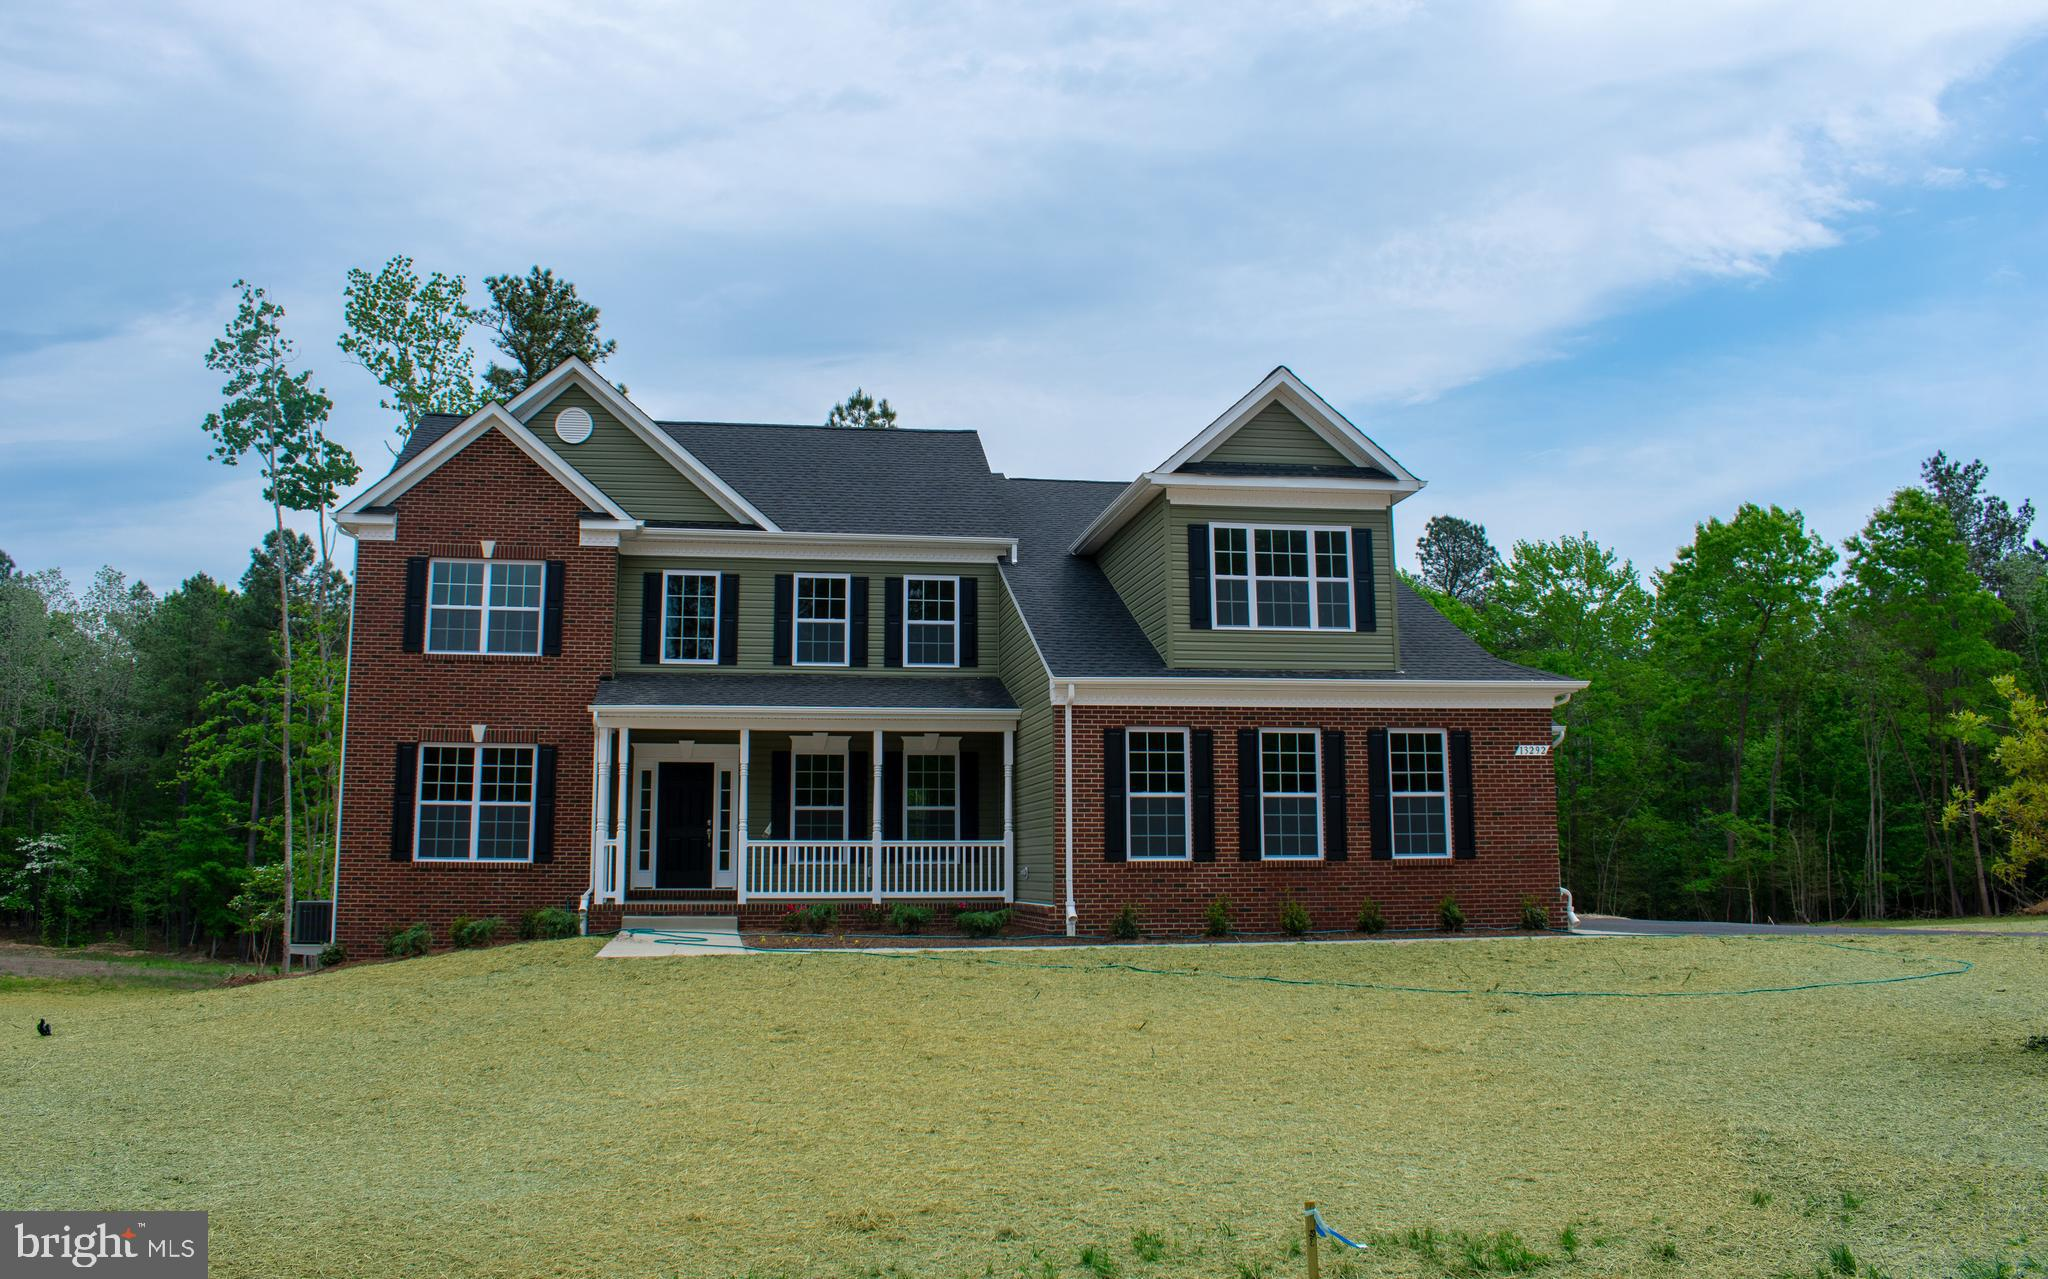 7415 SWALLOW PLACE, HUGHESVILLE, MD 20637